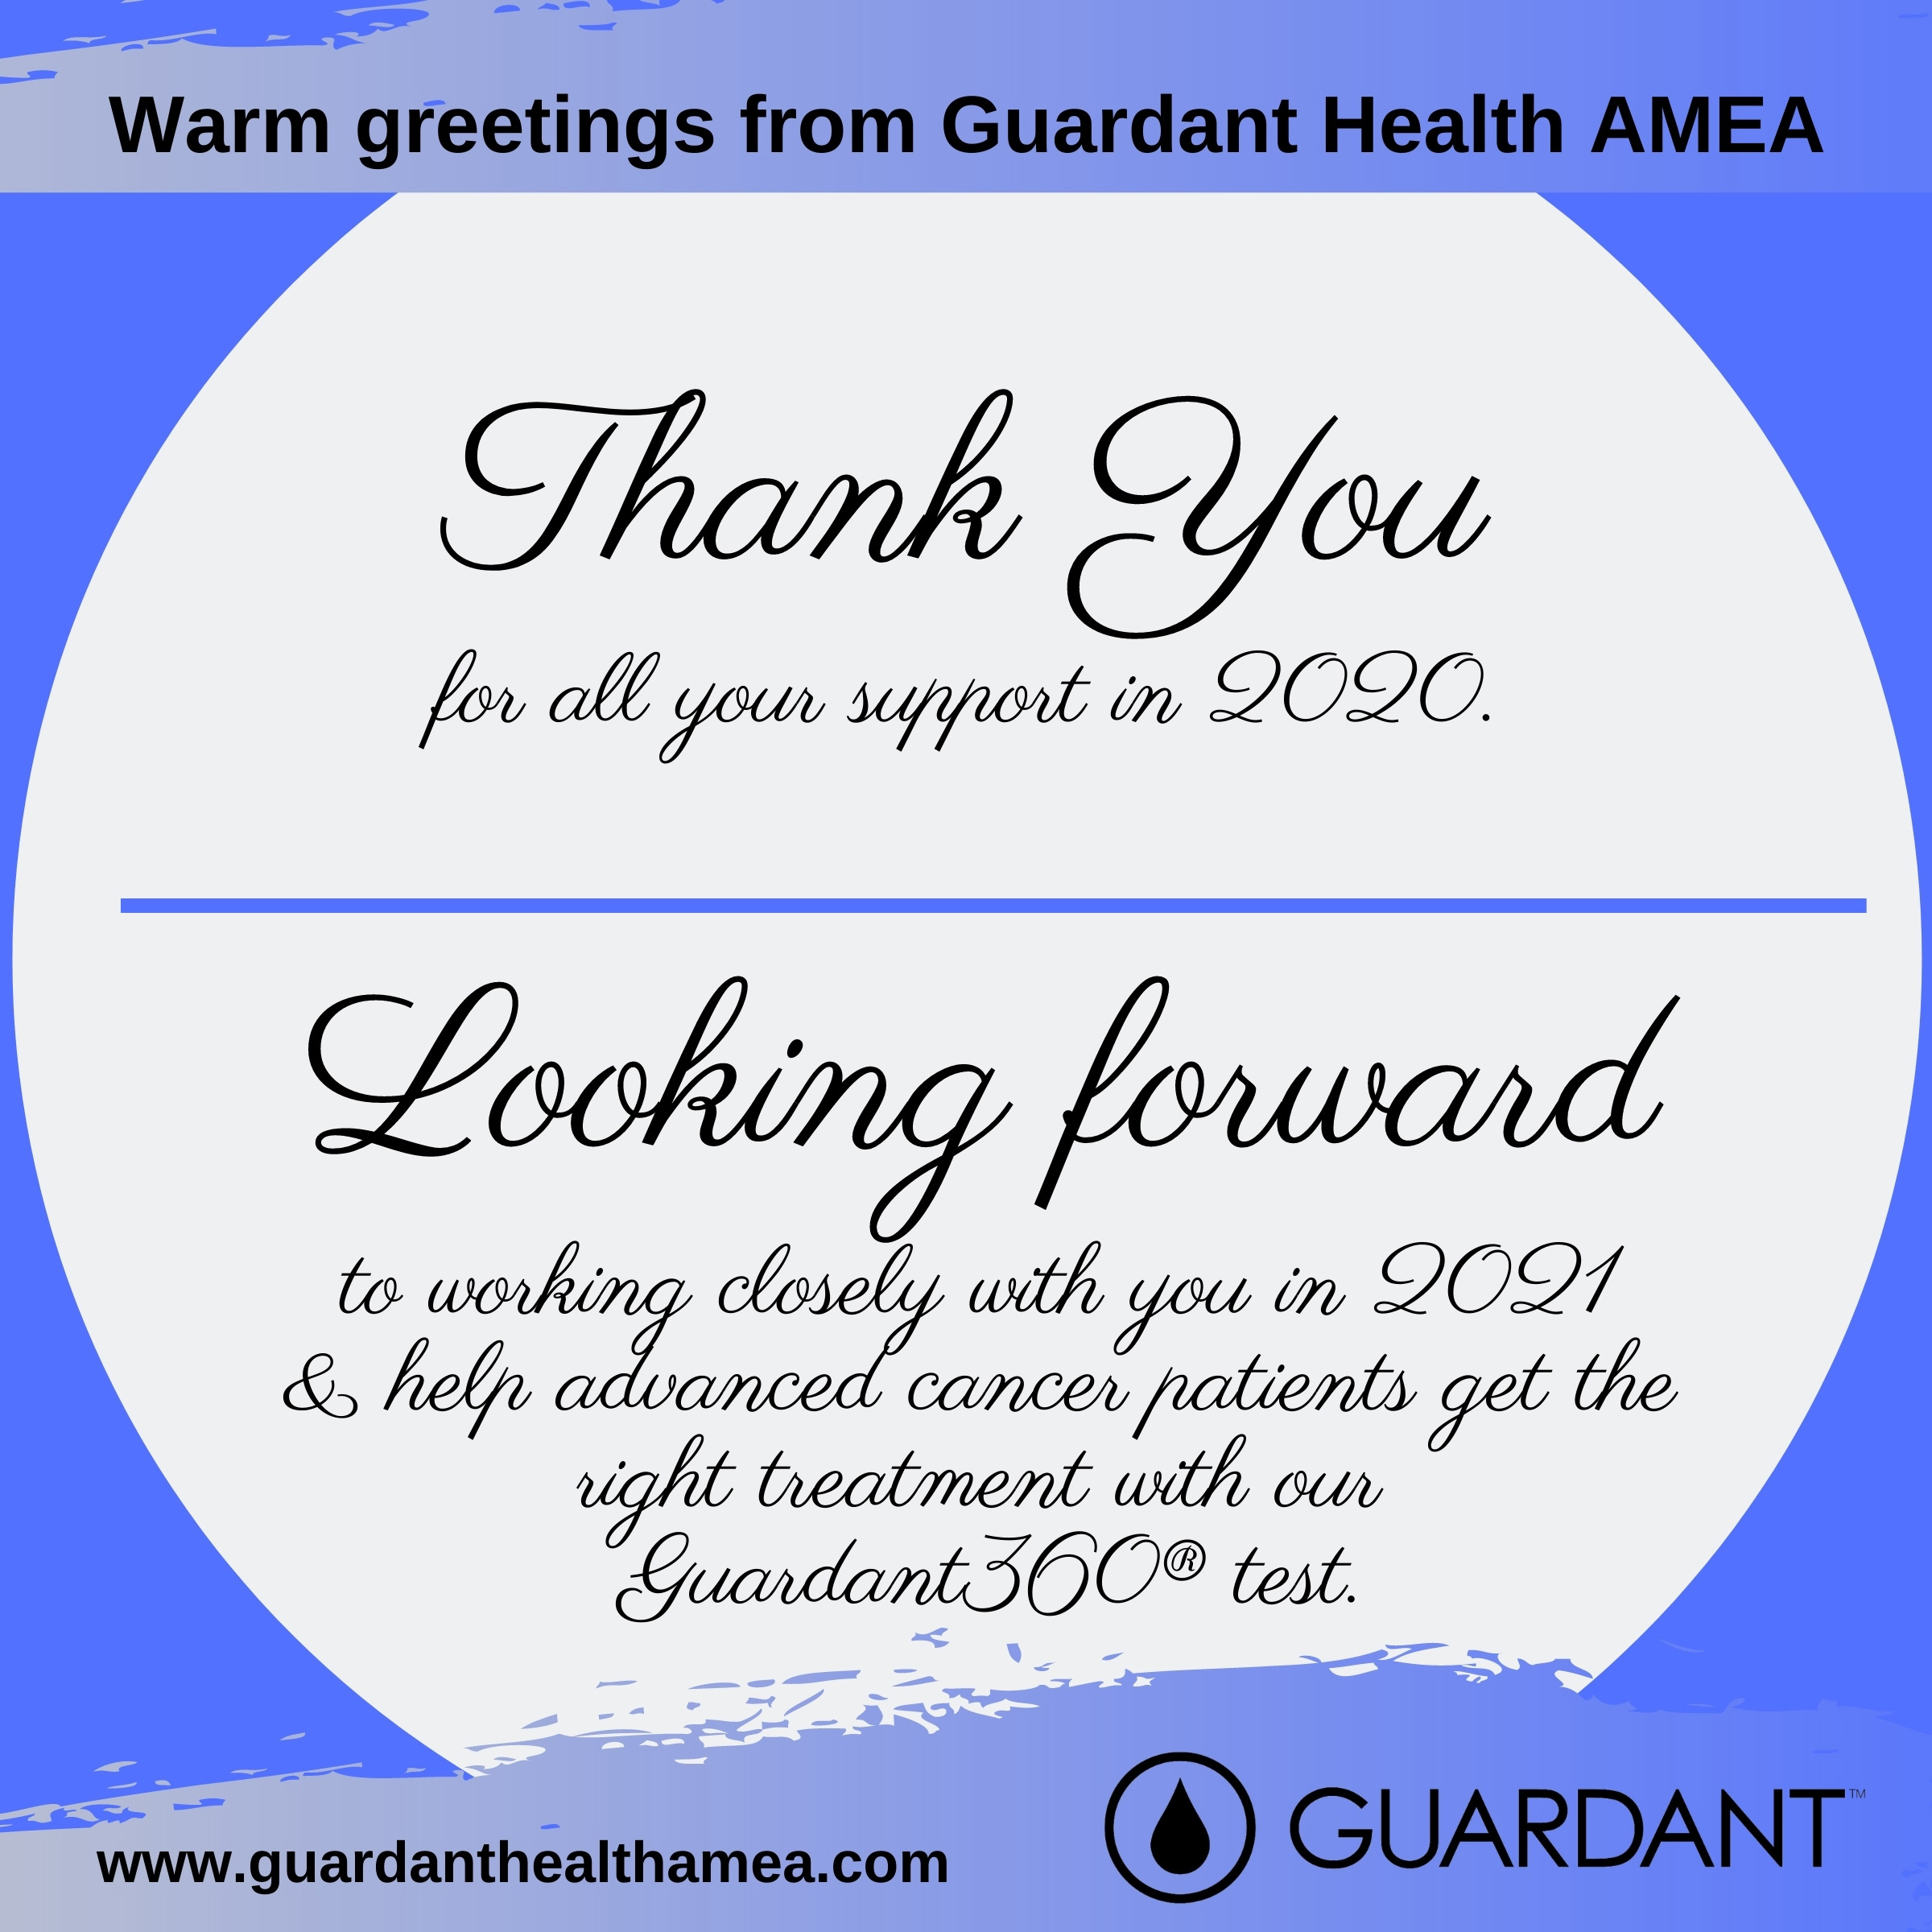 Guardant Health Presents Data at AACR Virtual Annual Meeting II Showing Liquid Biopsy Highly Accurate in Detecting Early-Stage Colorectal Cancer